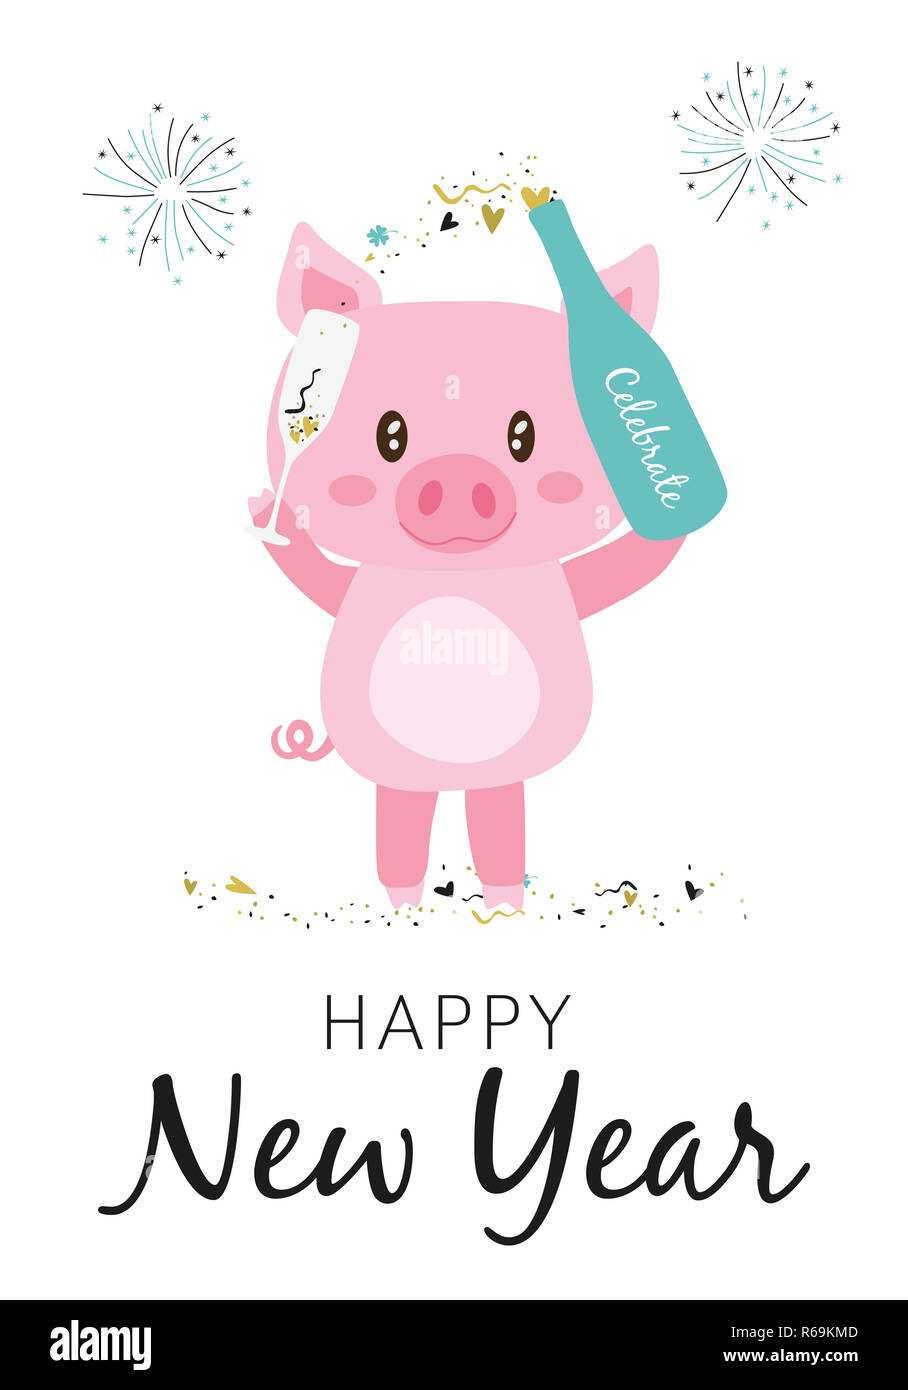 Happy New Year 2019 Greeting Card with sparkling pig Stock Photo